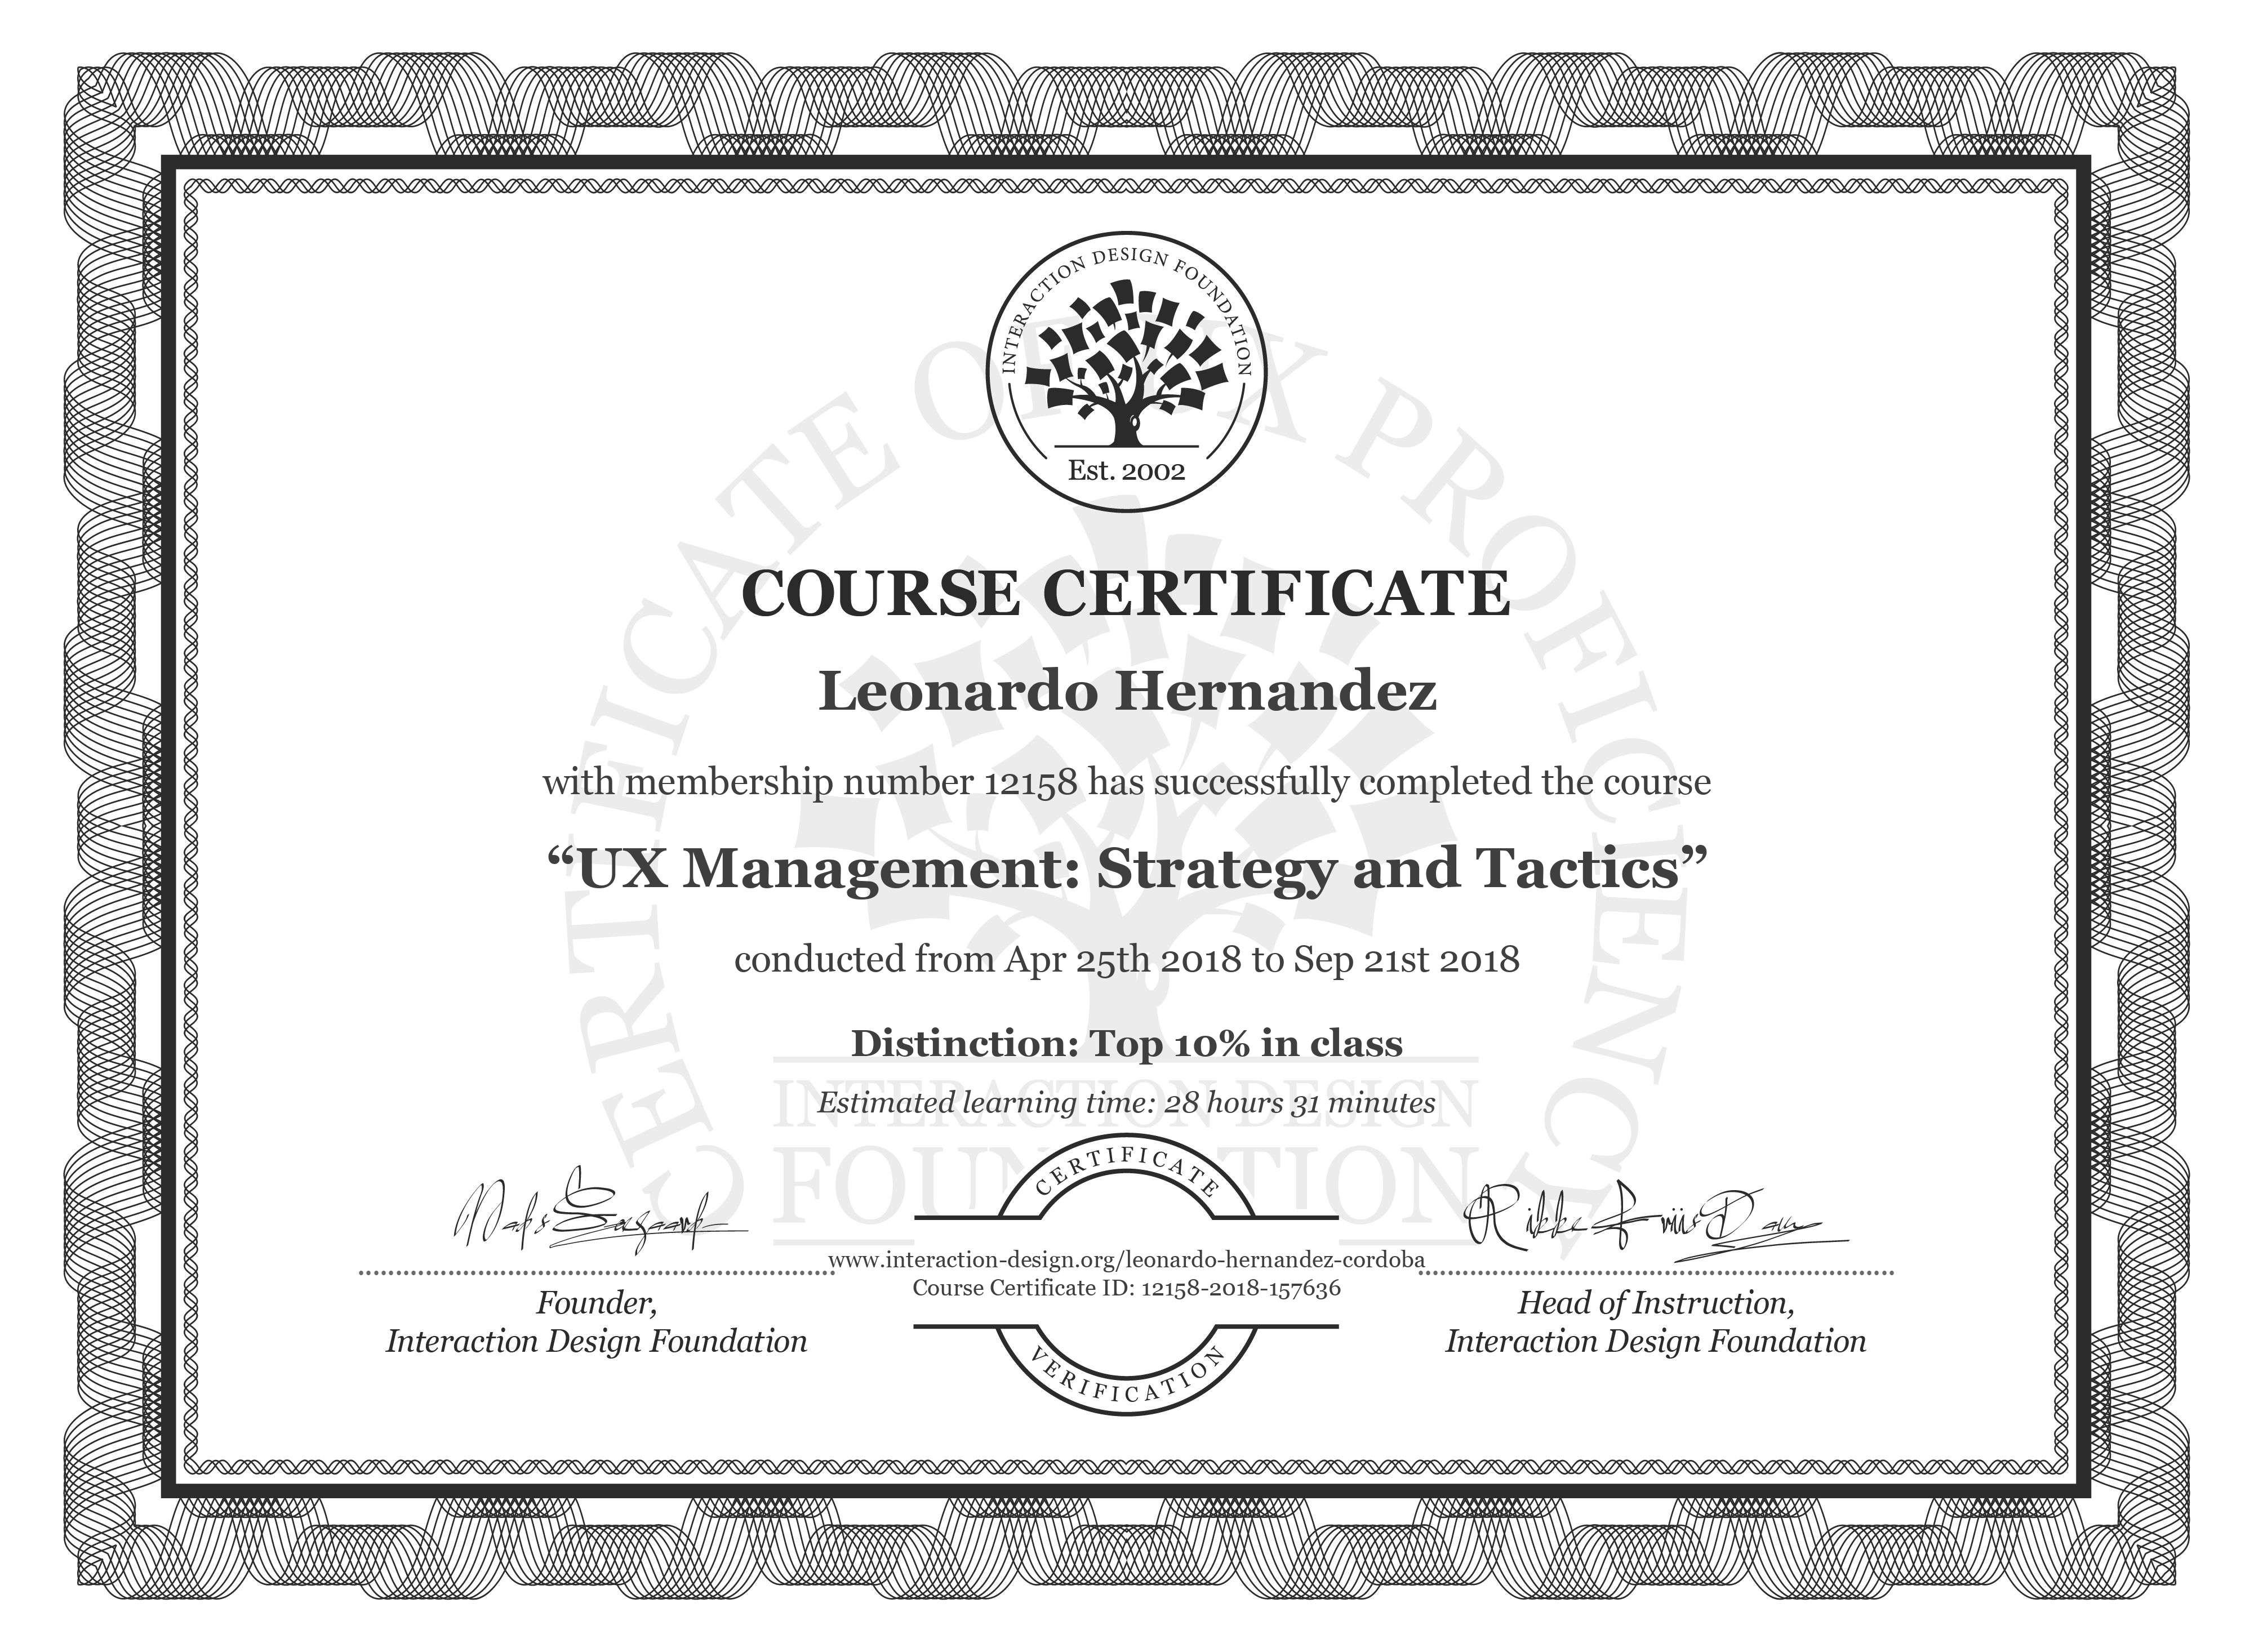 Leonardo: Course Certificate - UX Management: Strategy and Tactics